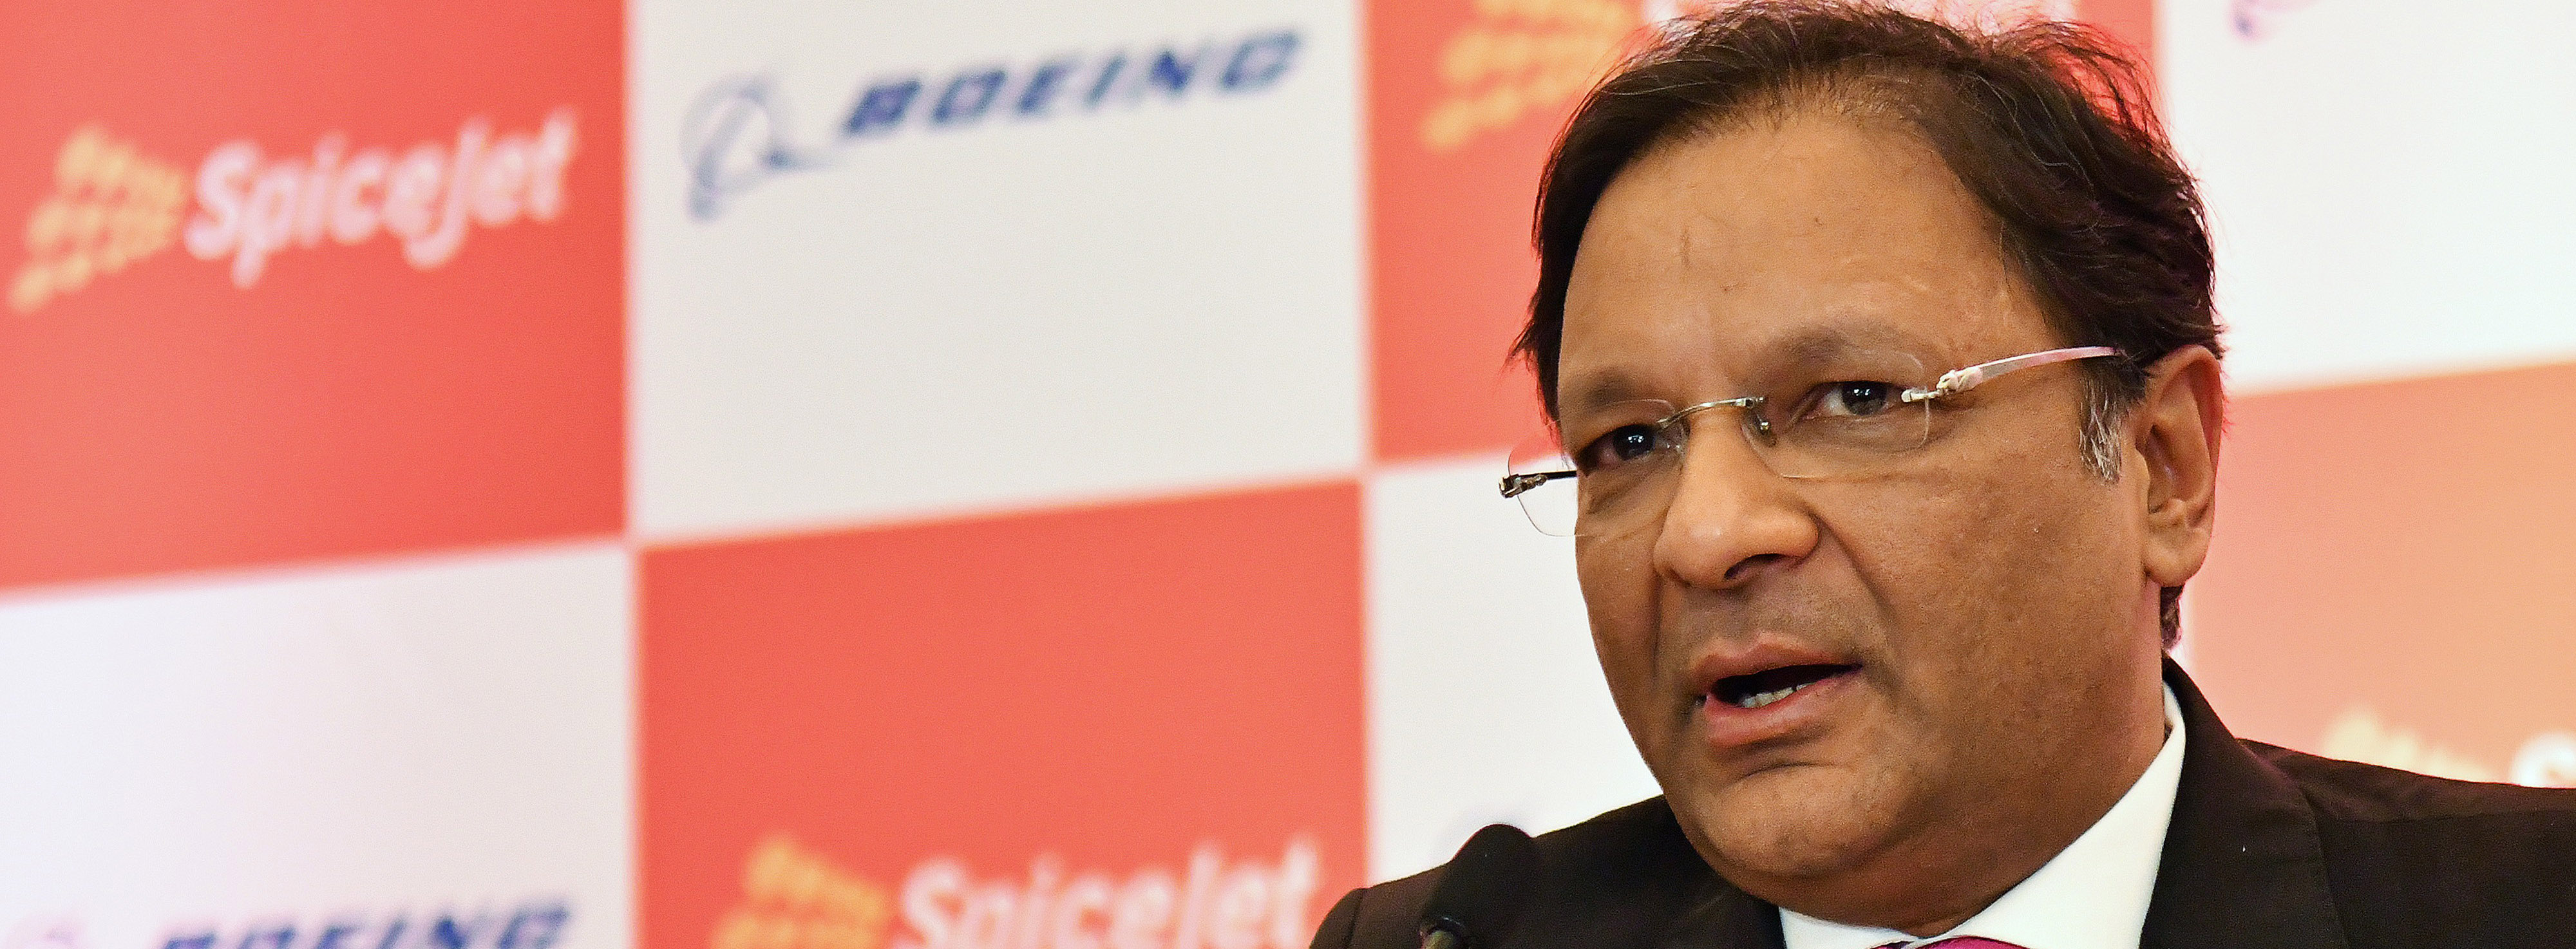 Spicejet CMD calls for cut in taxes on jet fuel to boost